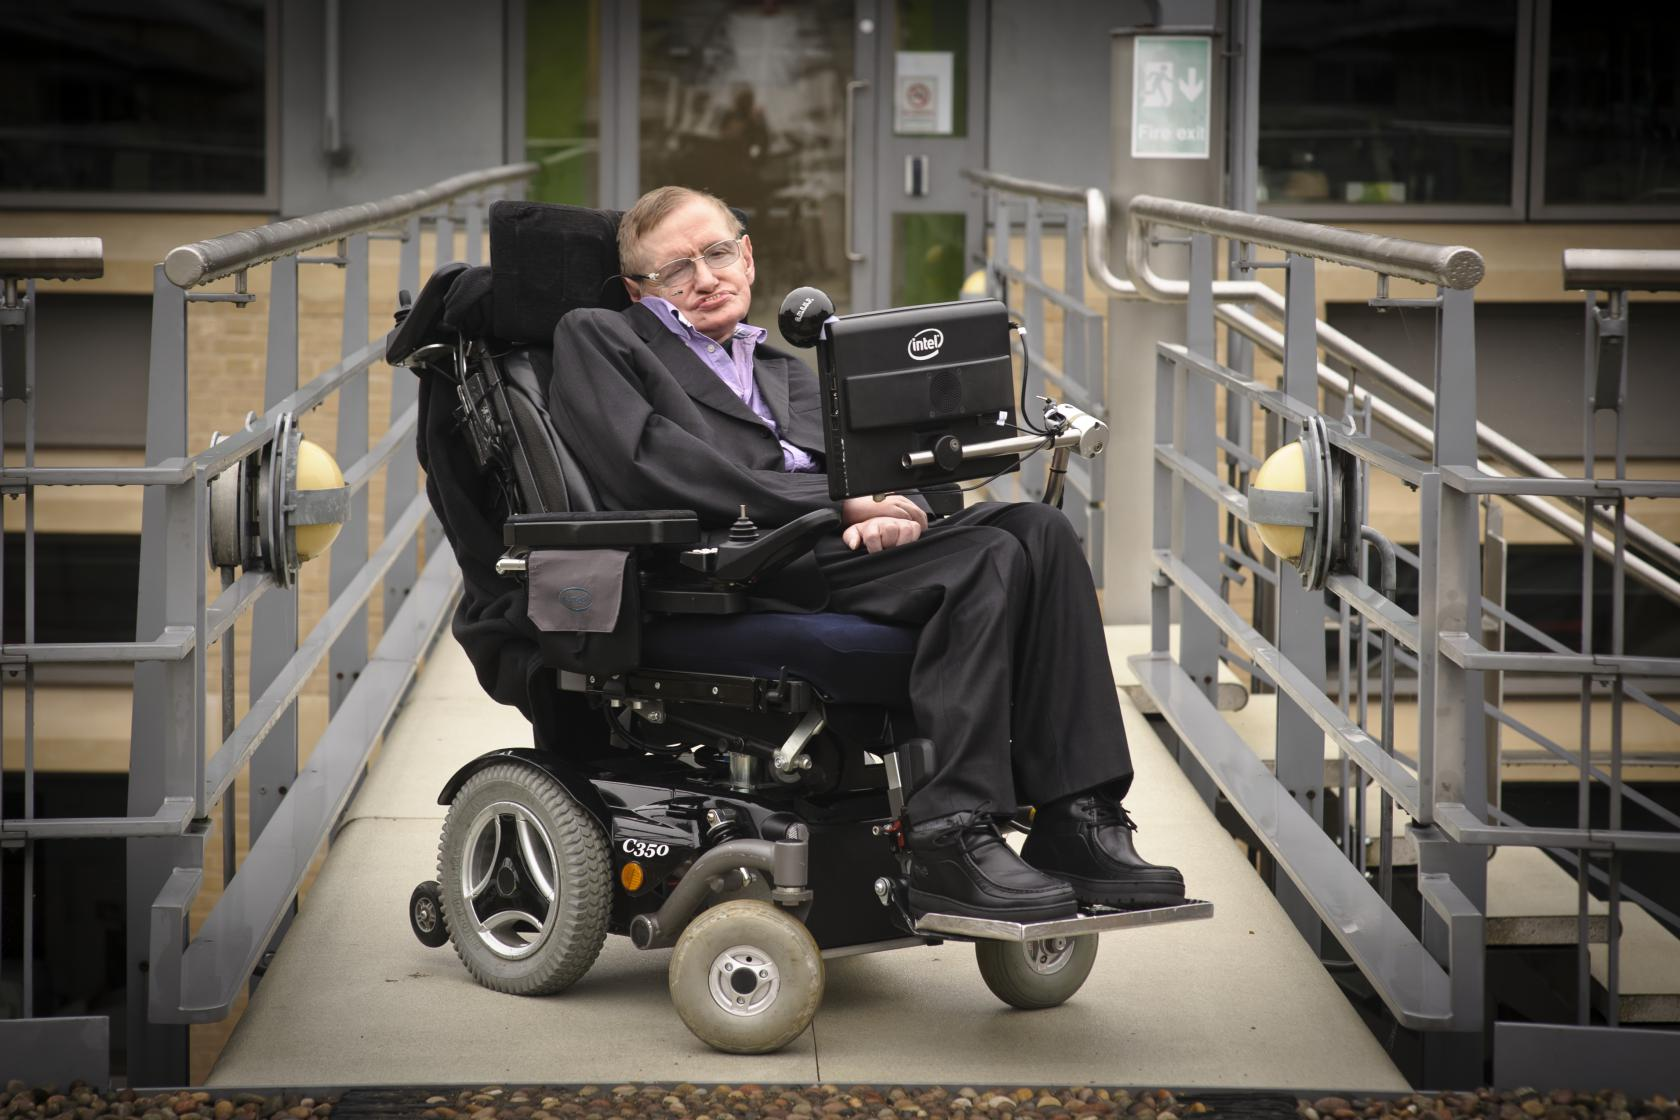 Stephen Hawking: the extraordinary scientist who changed our understanding of physics